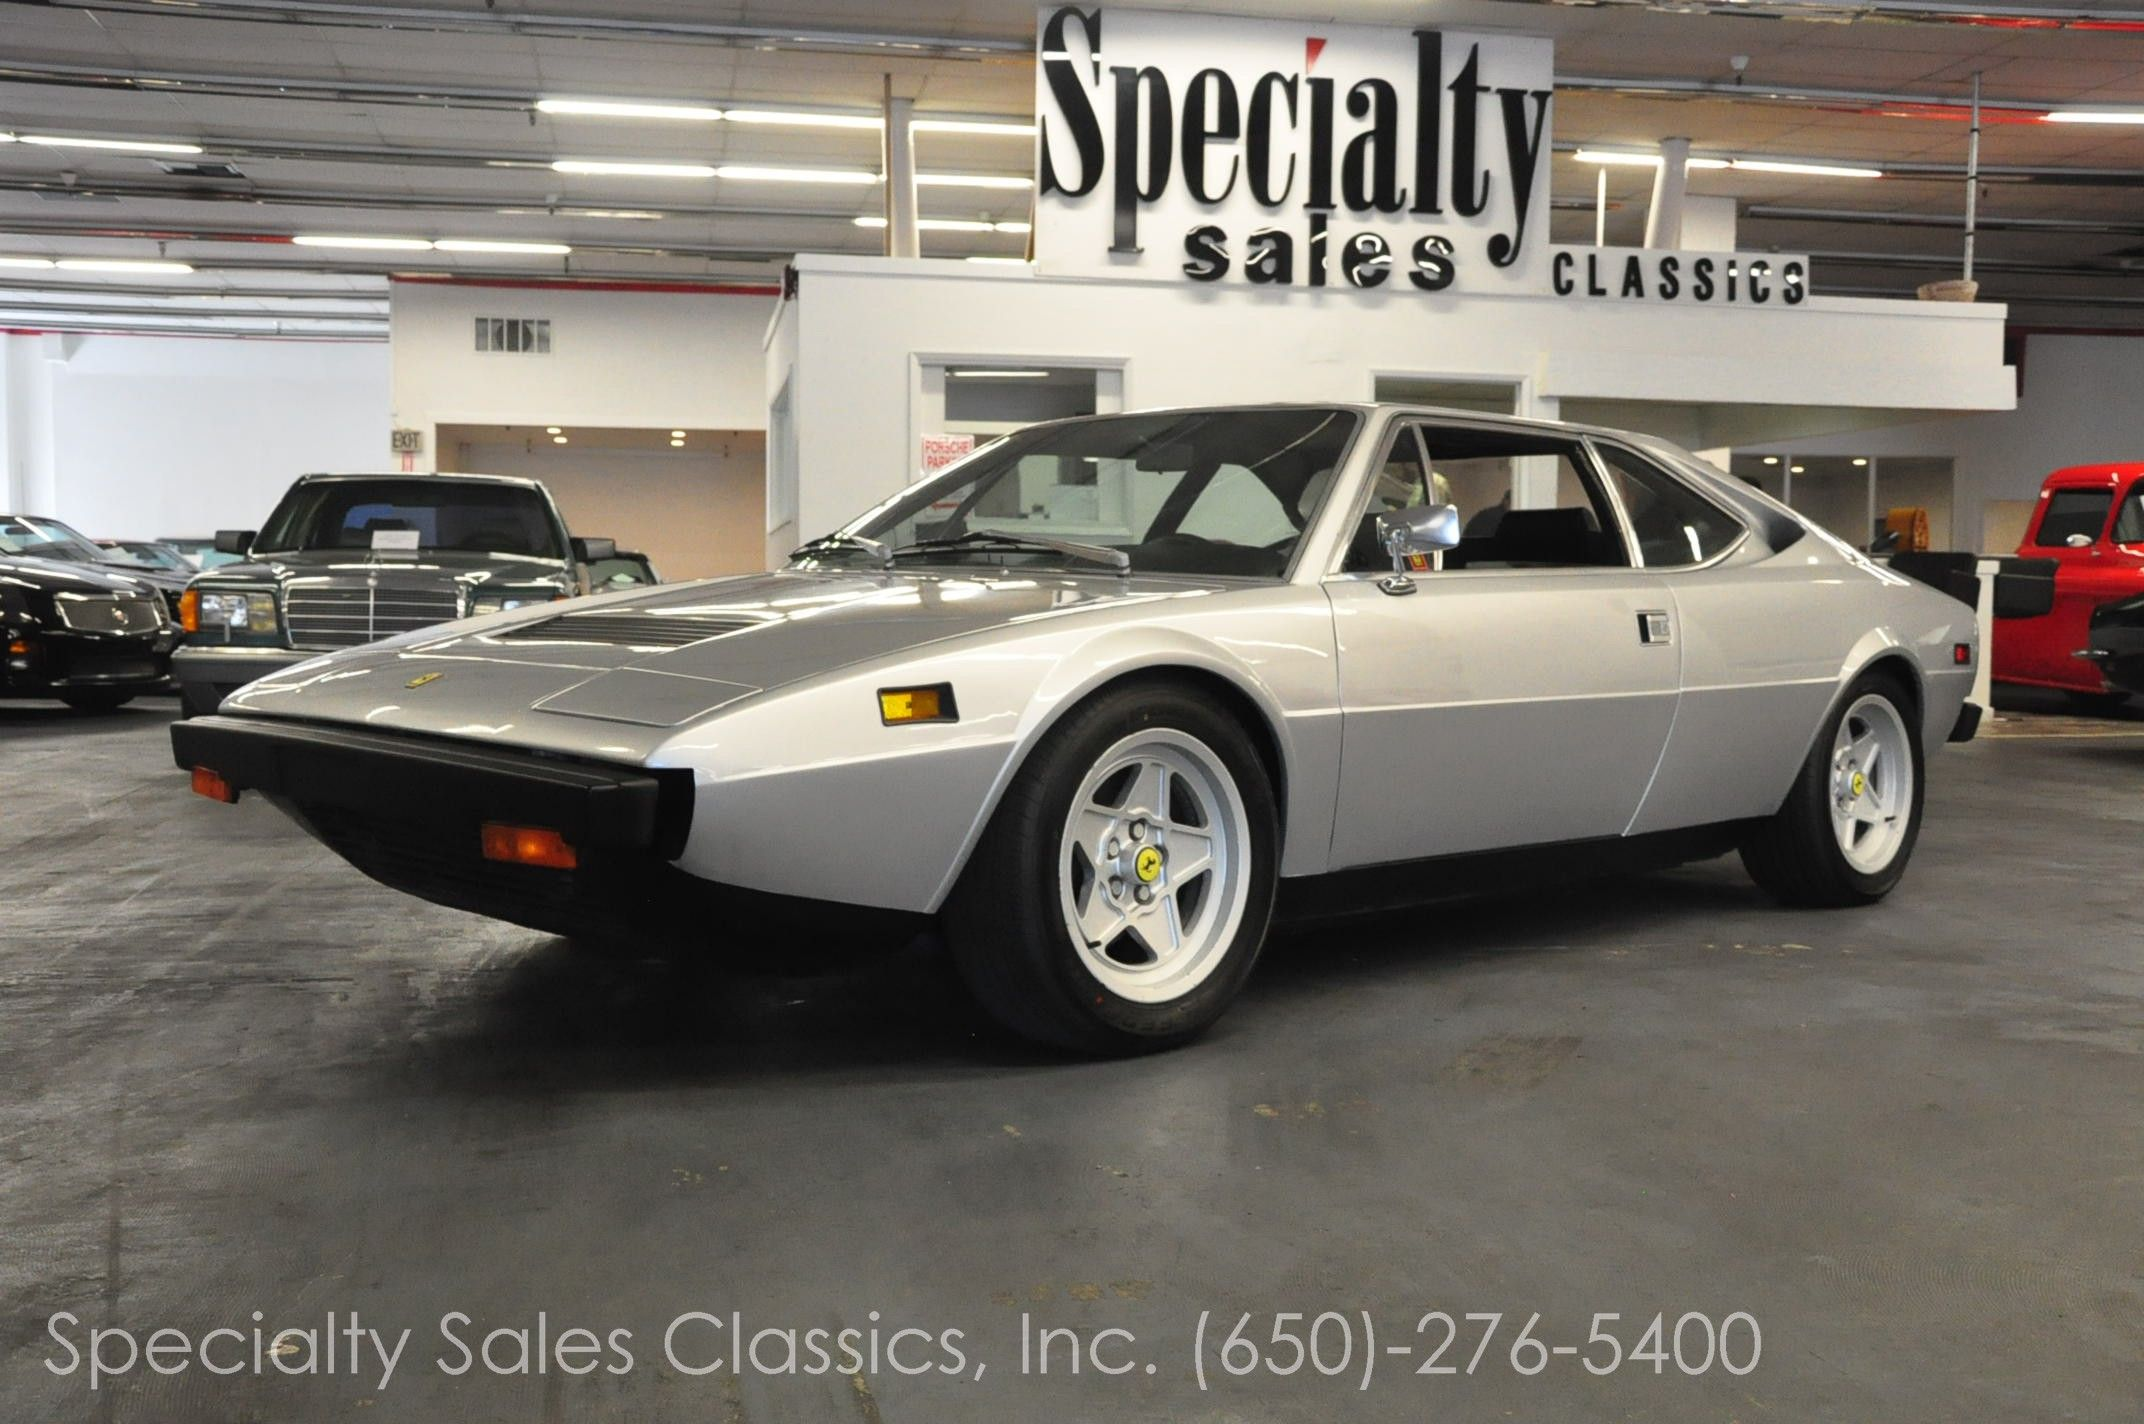 1975 Ferrari Gt4 For Sale Ferrari Dino 308 Gt4 For Sale In